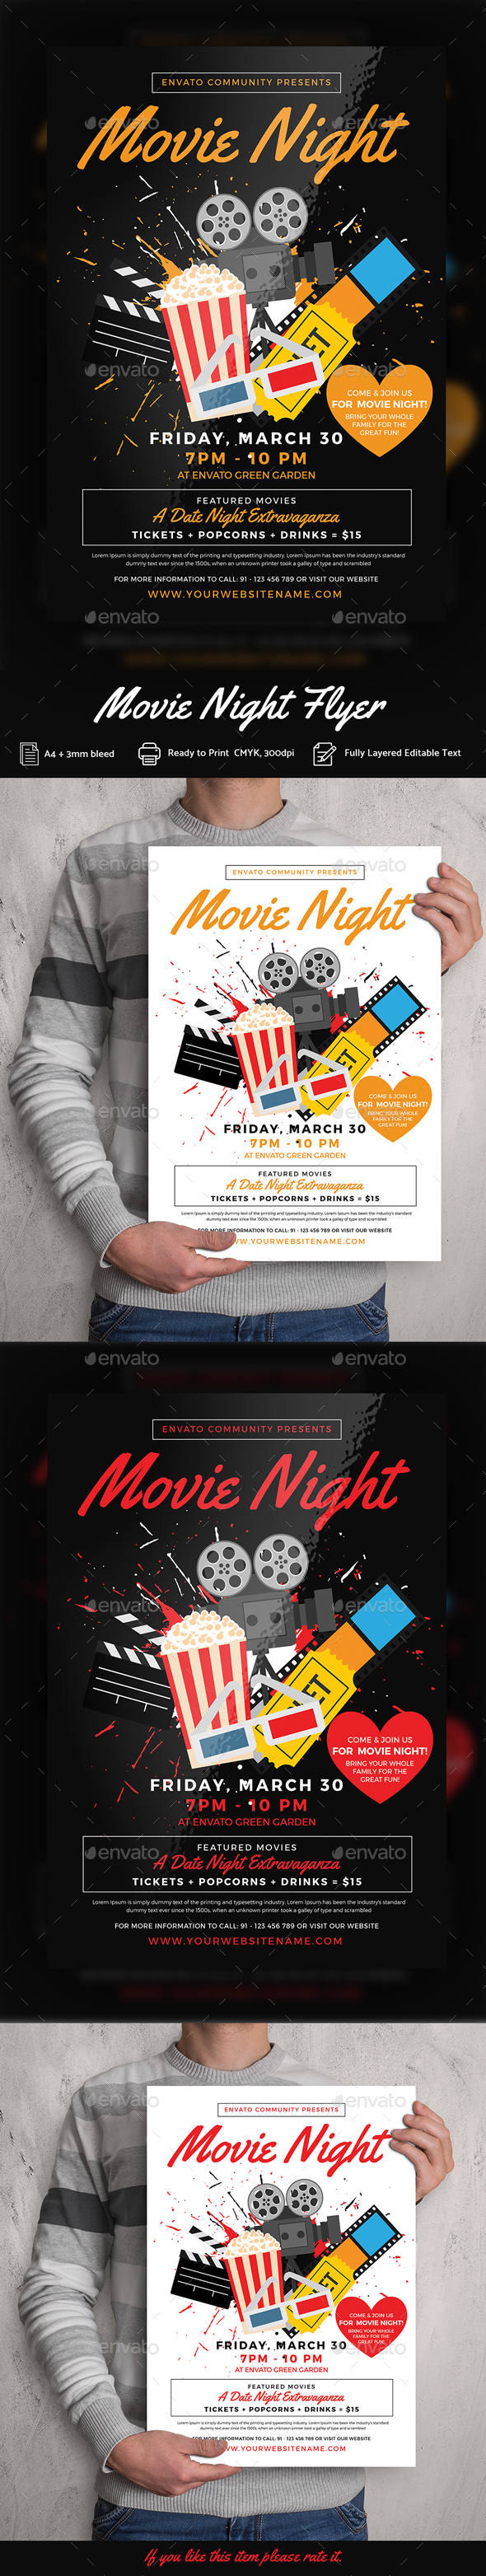 Movie Night Flyer Templates - Print Templates